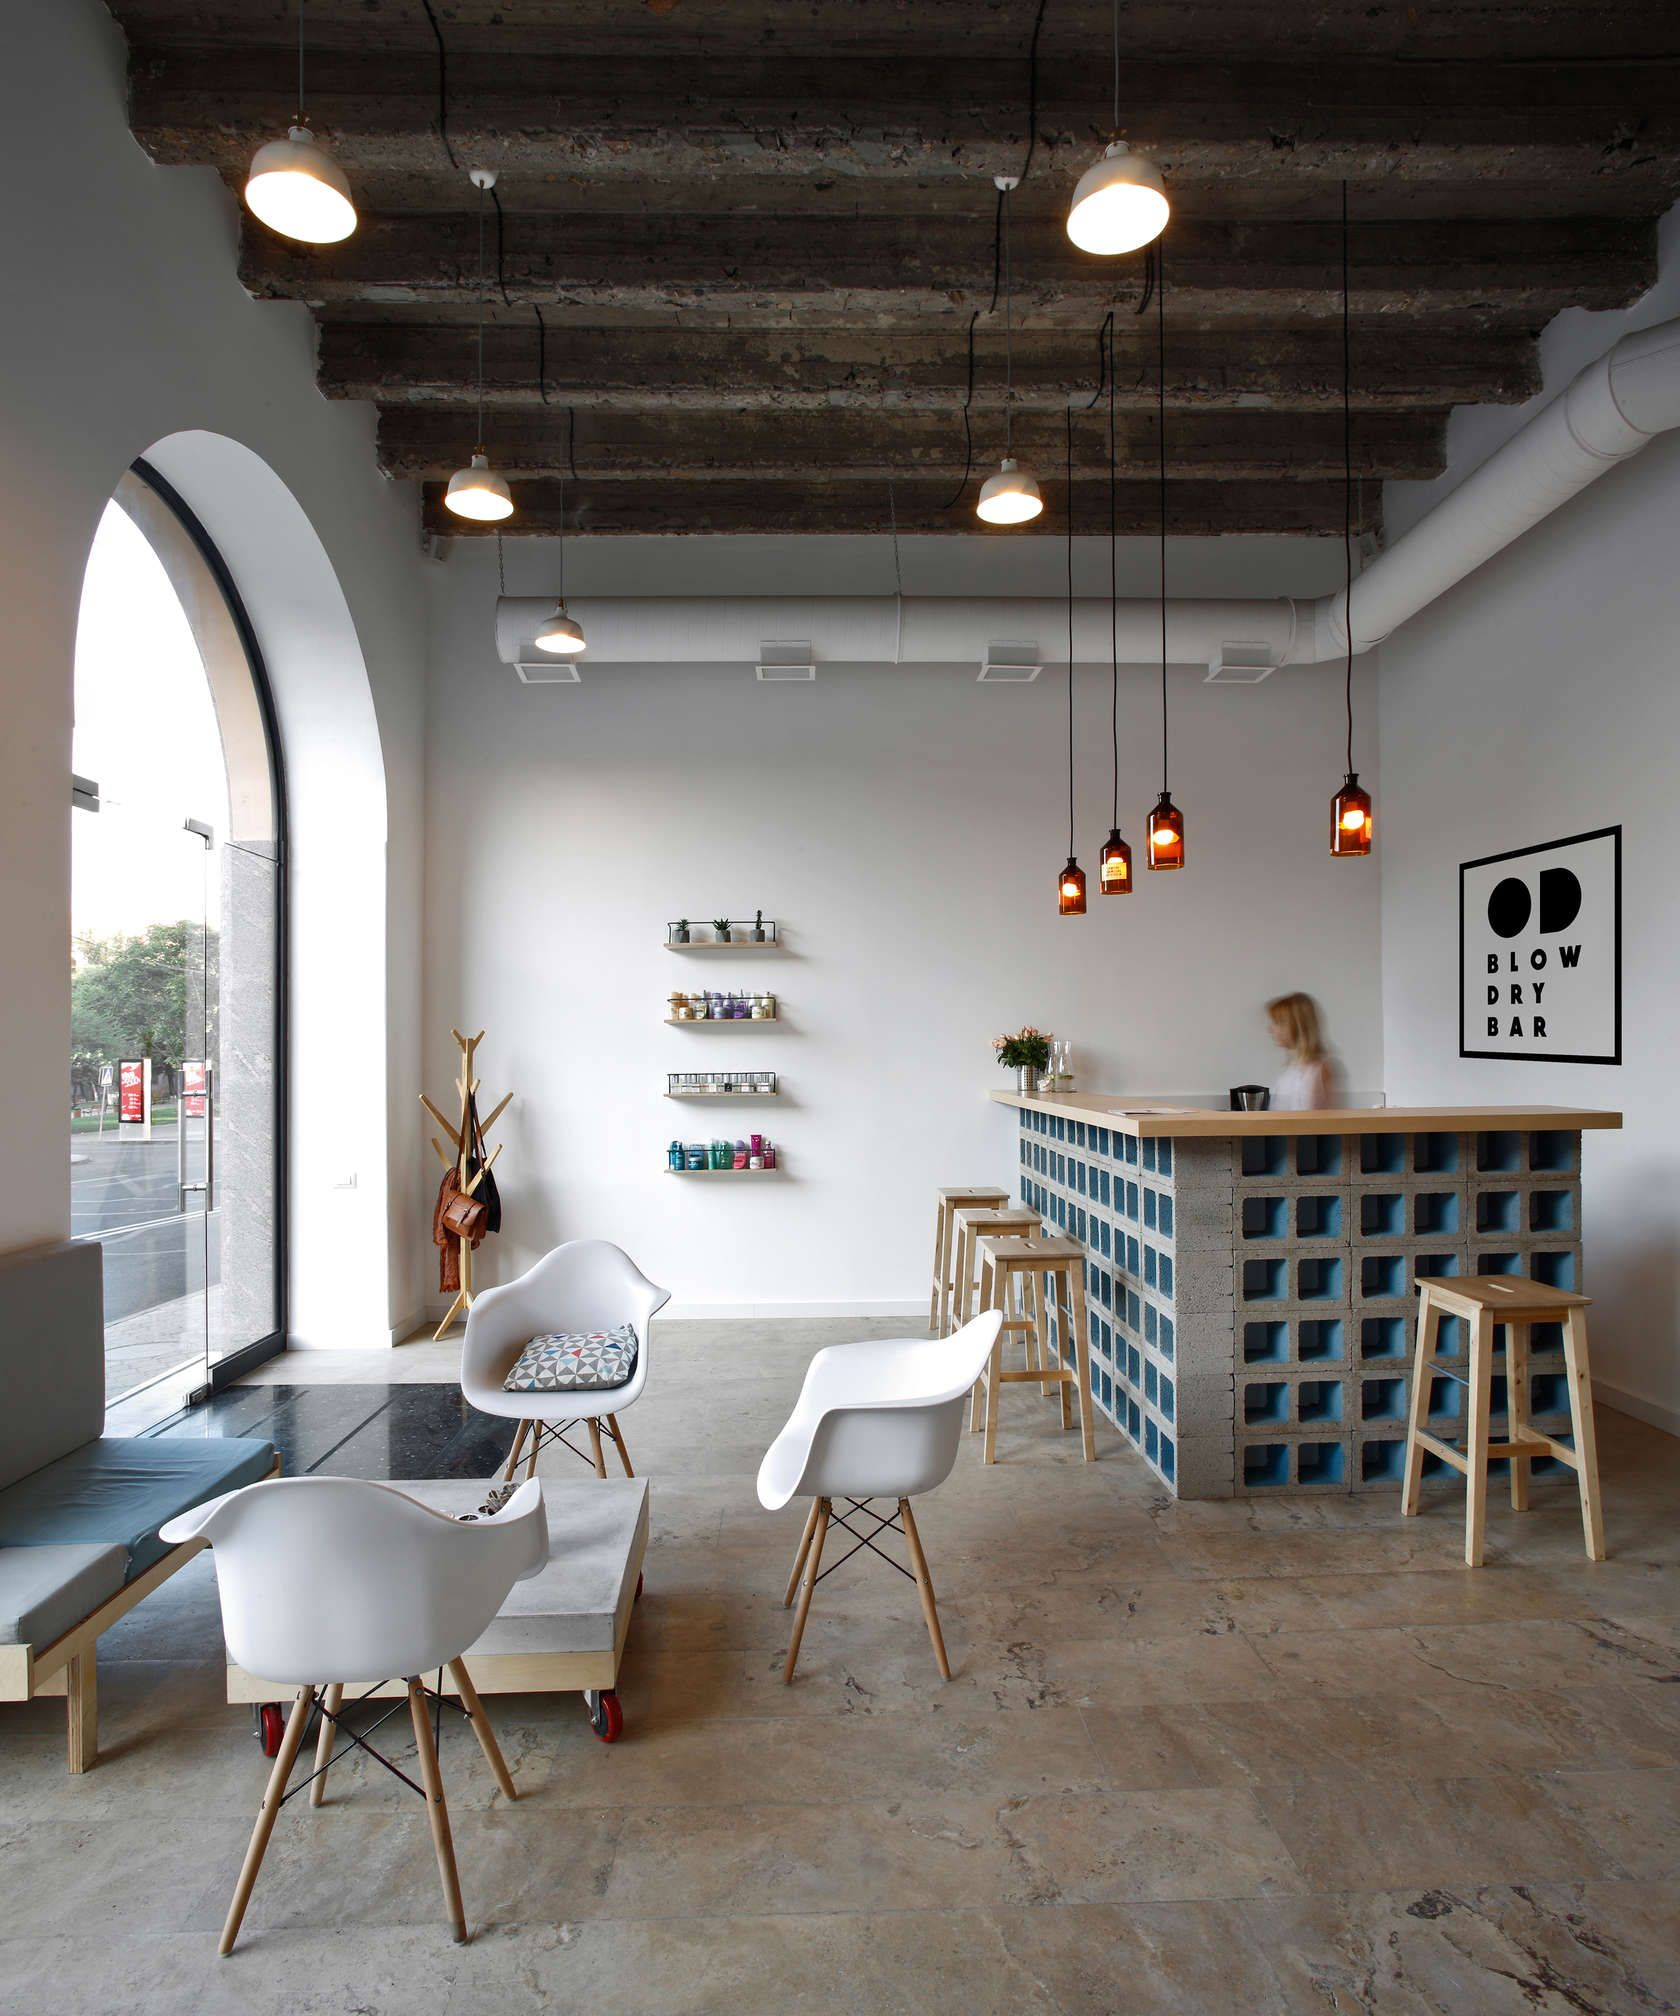 OD Blow Dry Bar Architecture Pinterest